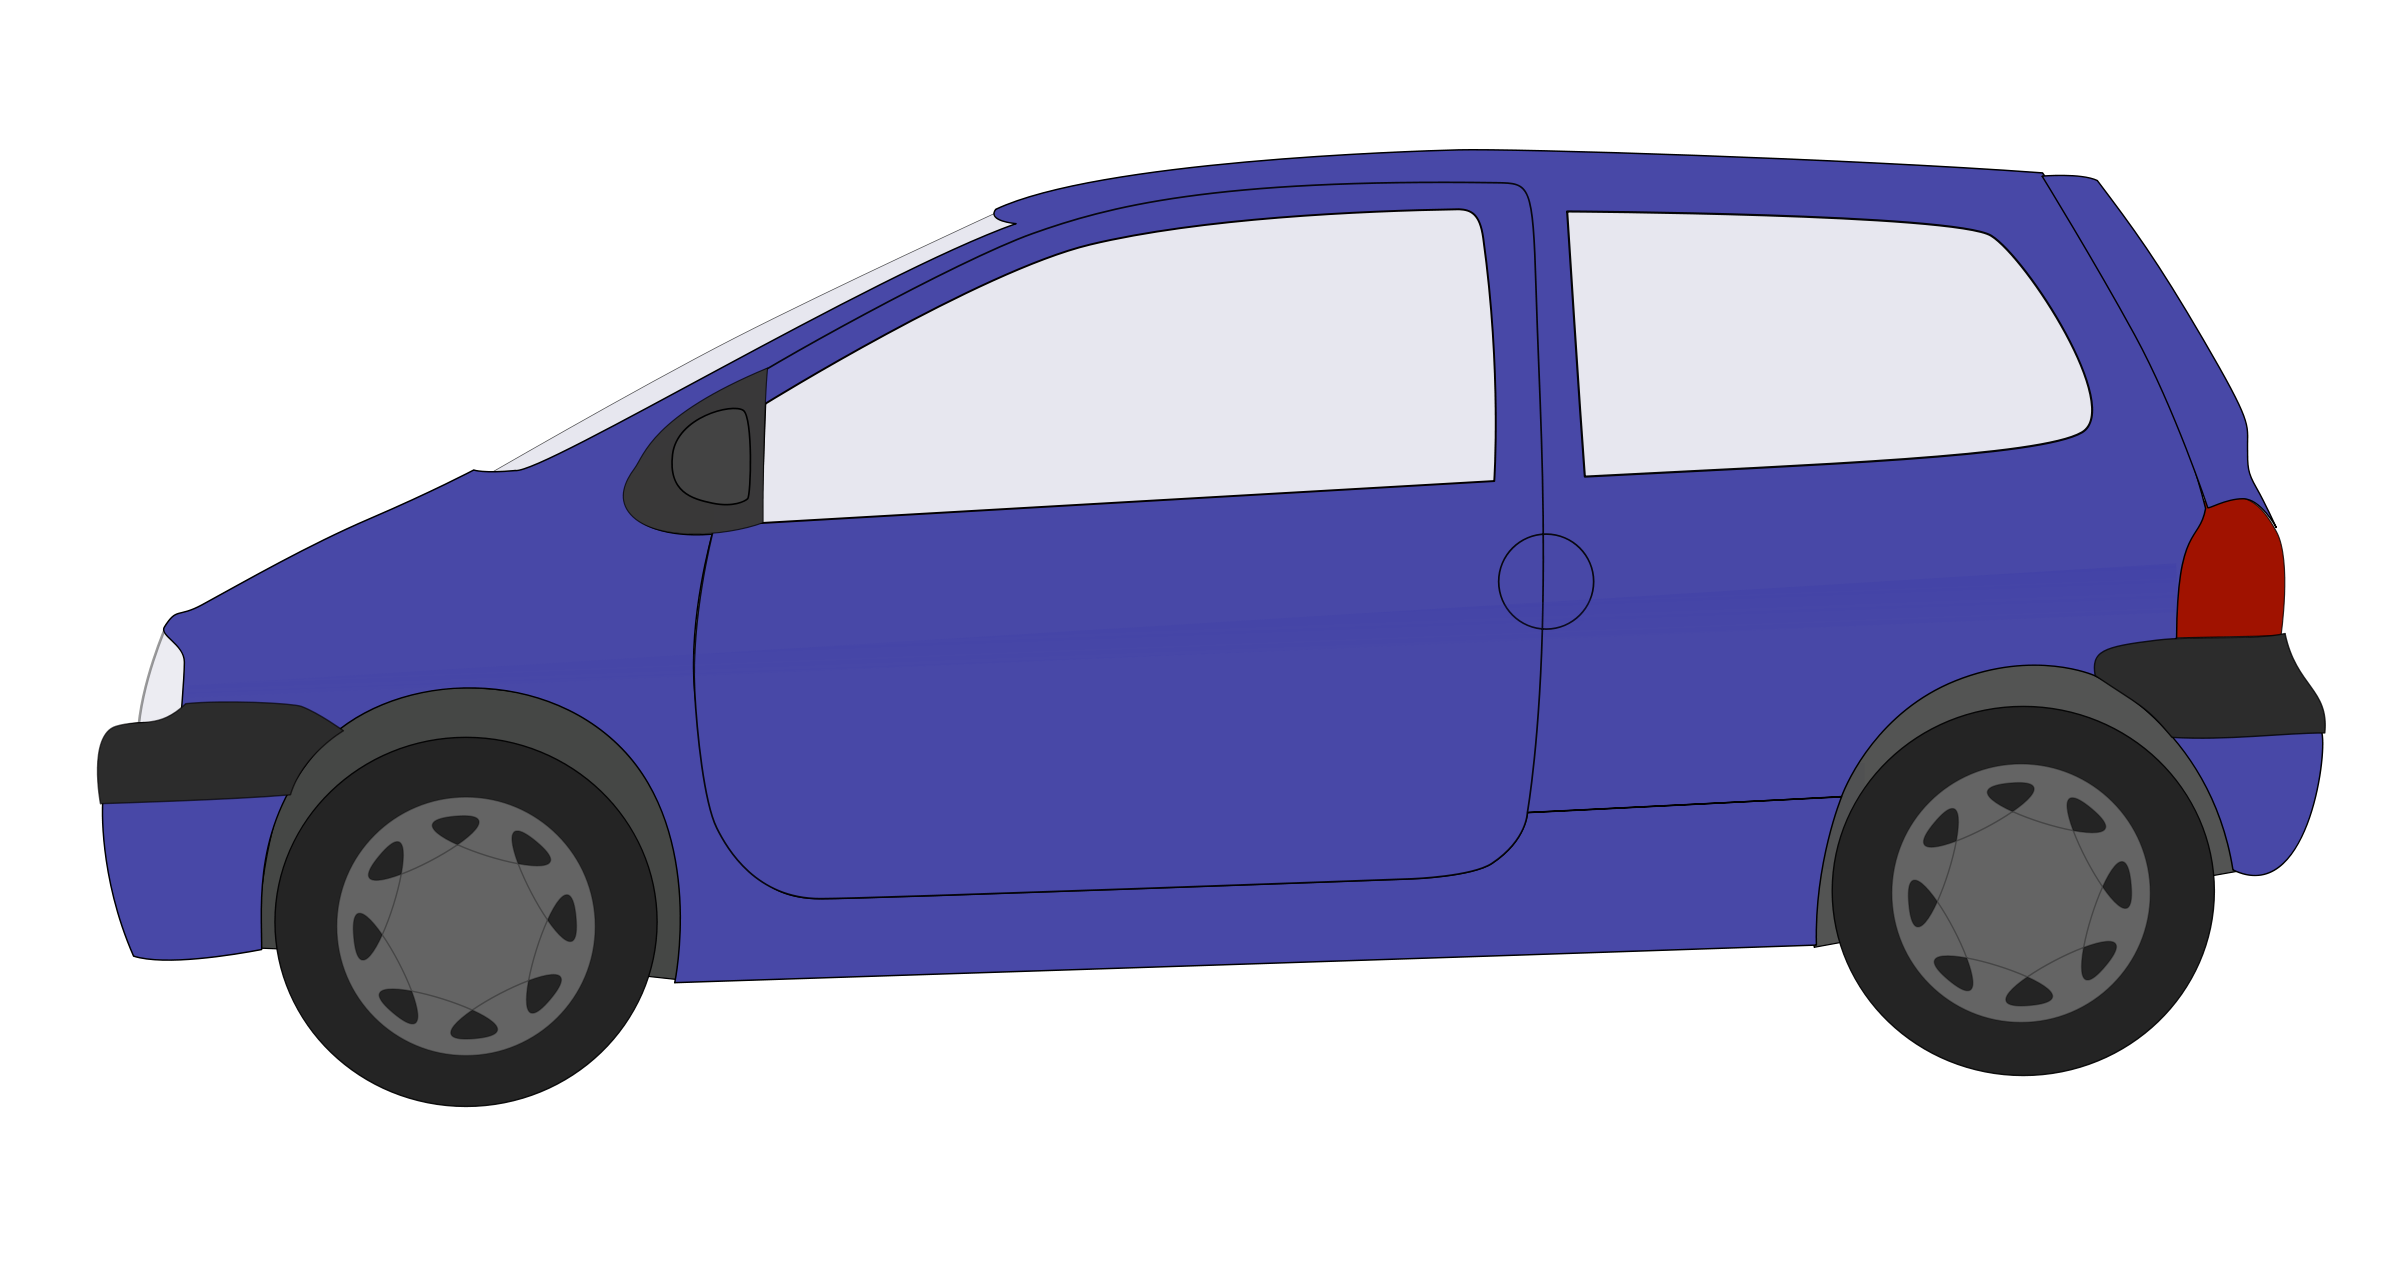 Car Animation Clip art.